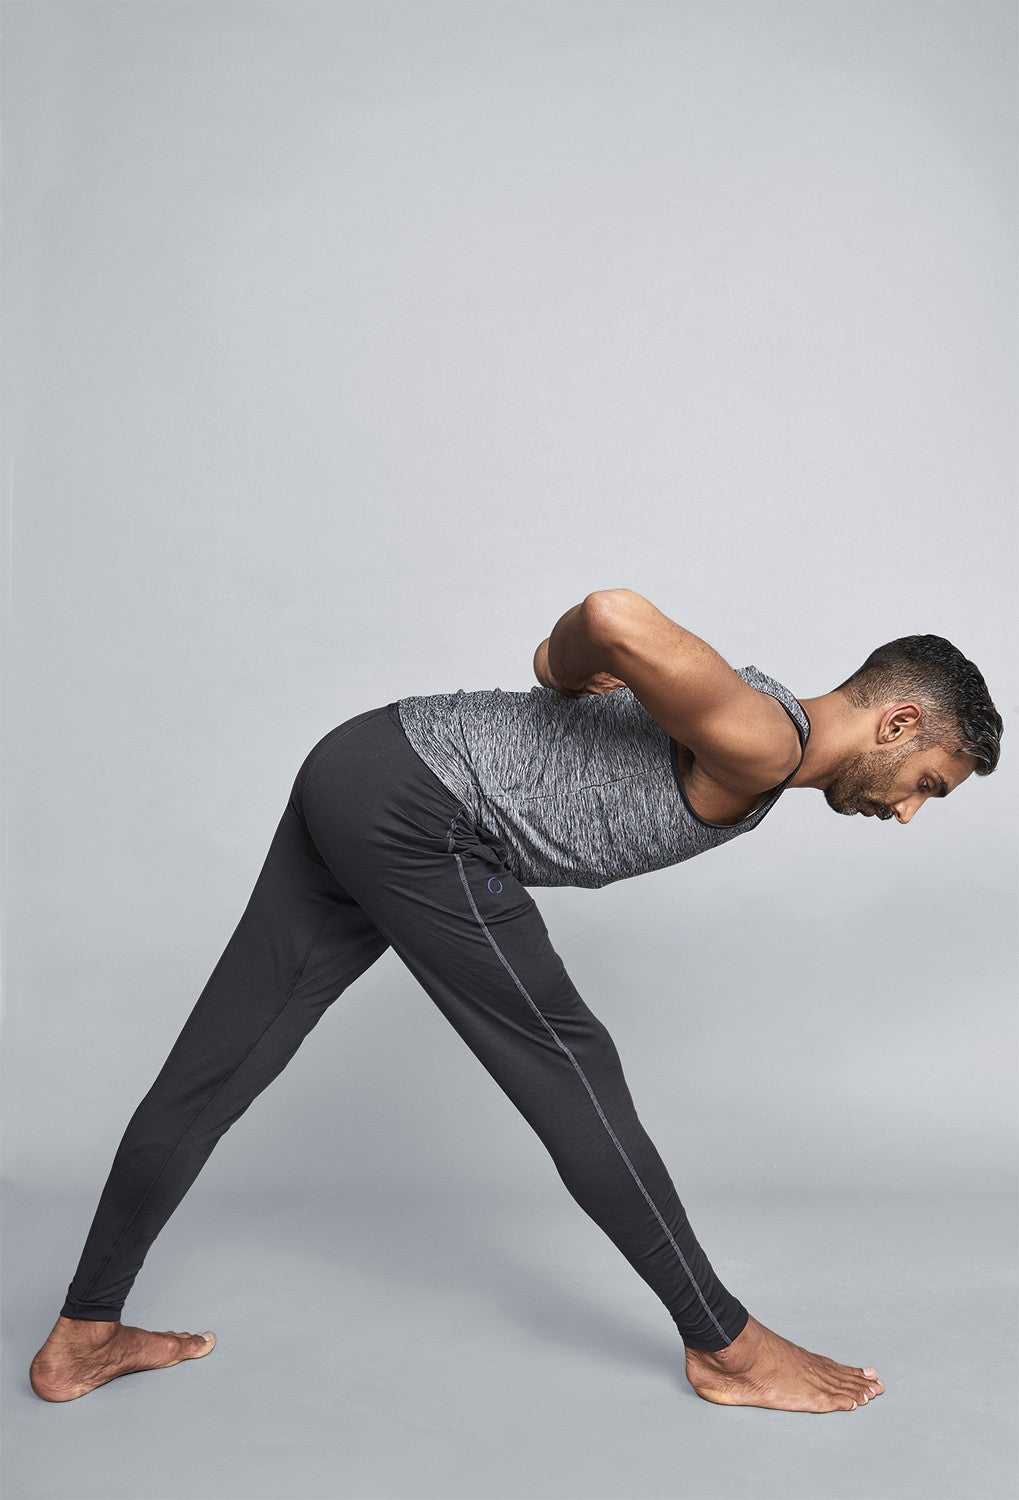 Dharma Yoga Pants for Men